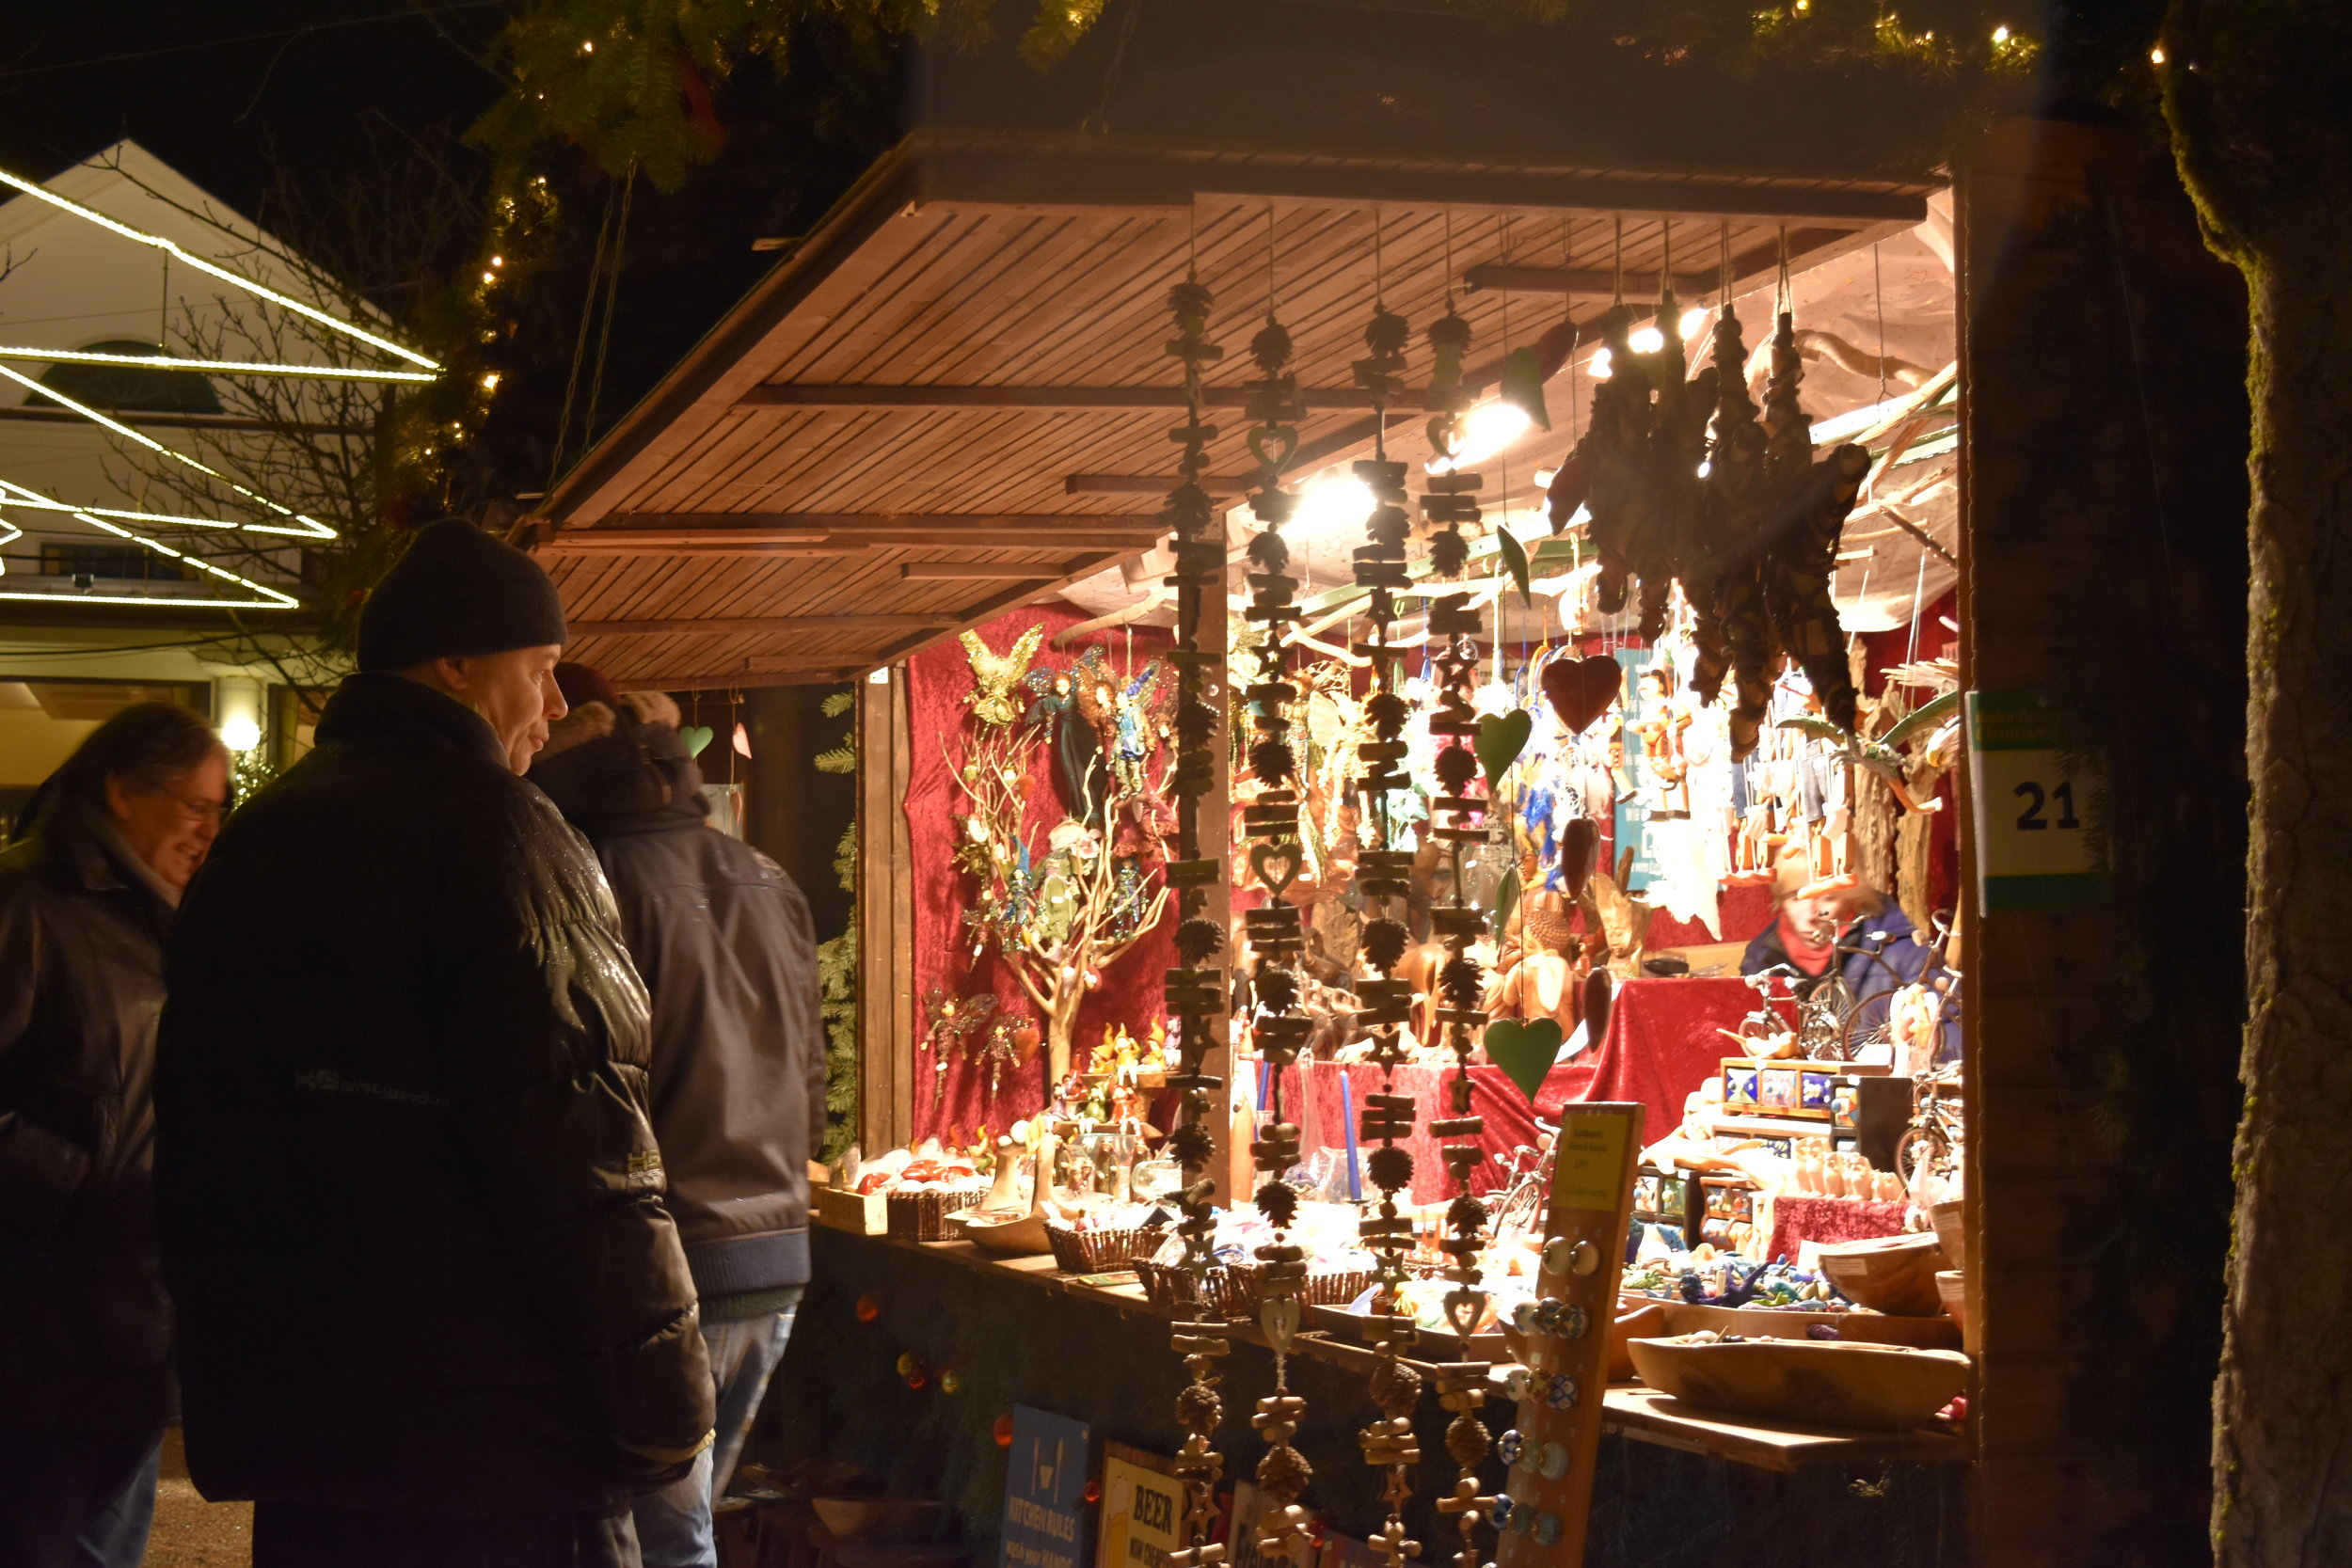 An onlooker is admiring the trinkets in the booth at the Christmas Market in Baden Baden, Germany.